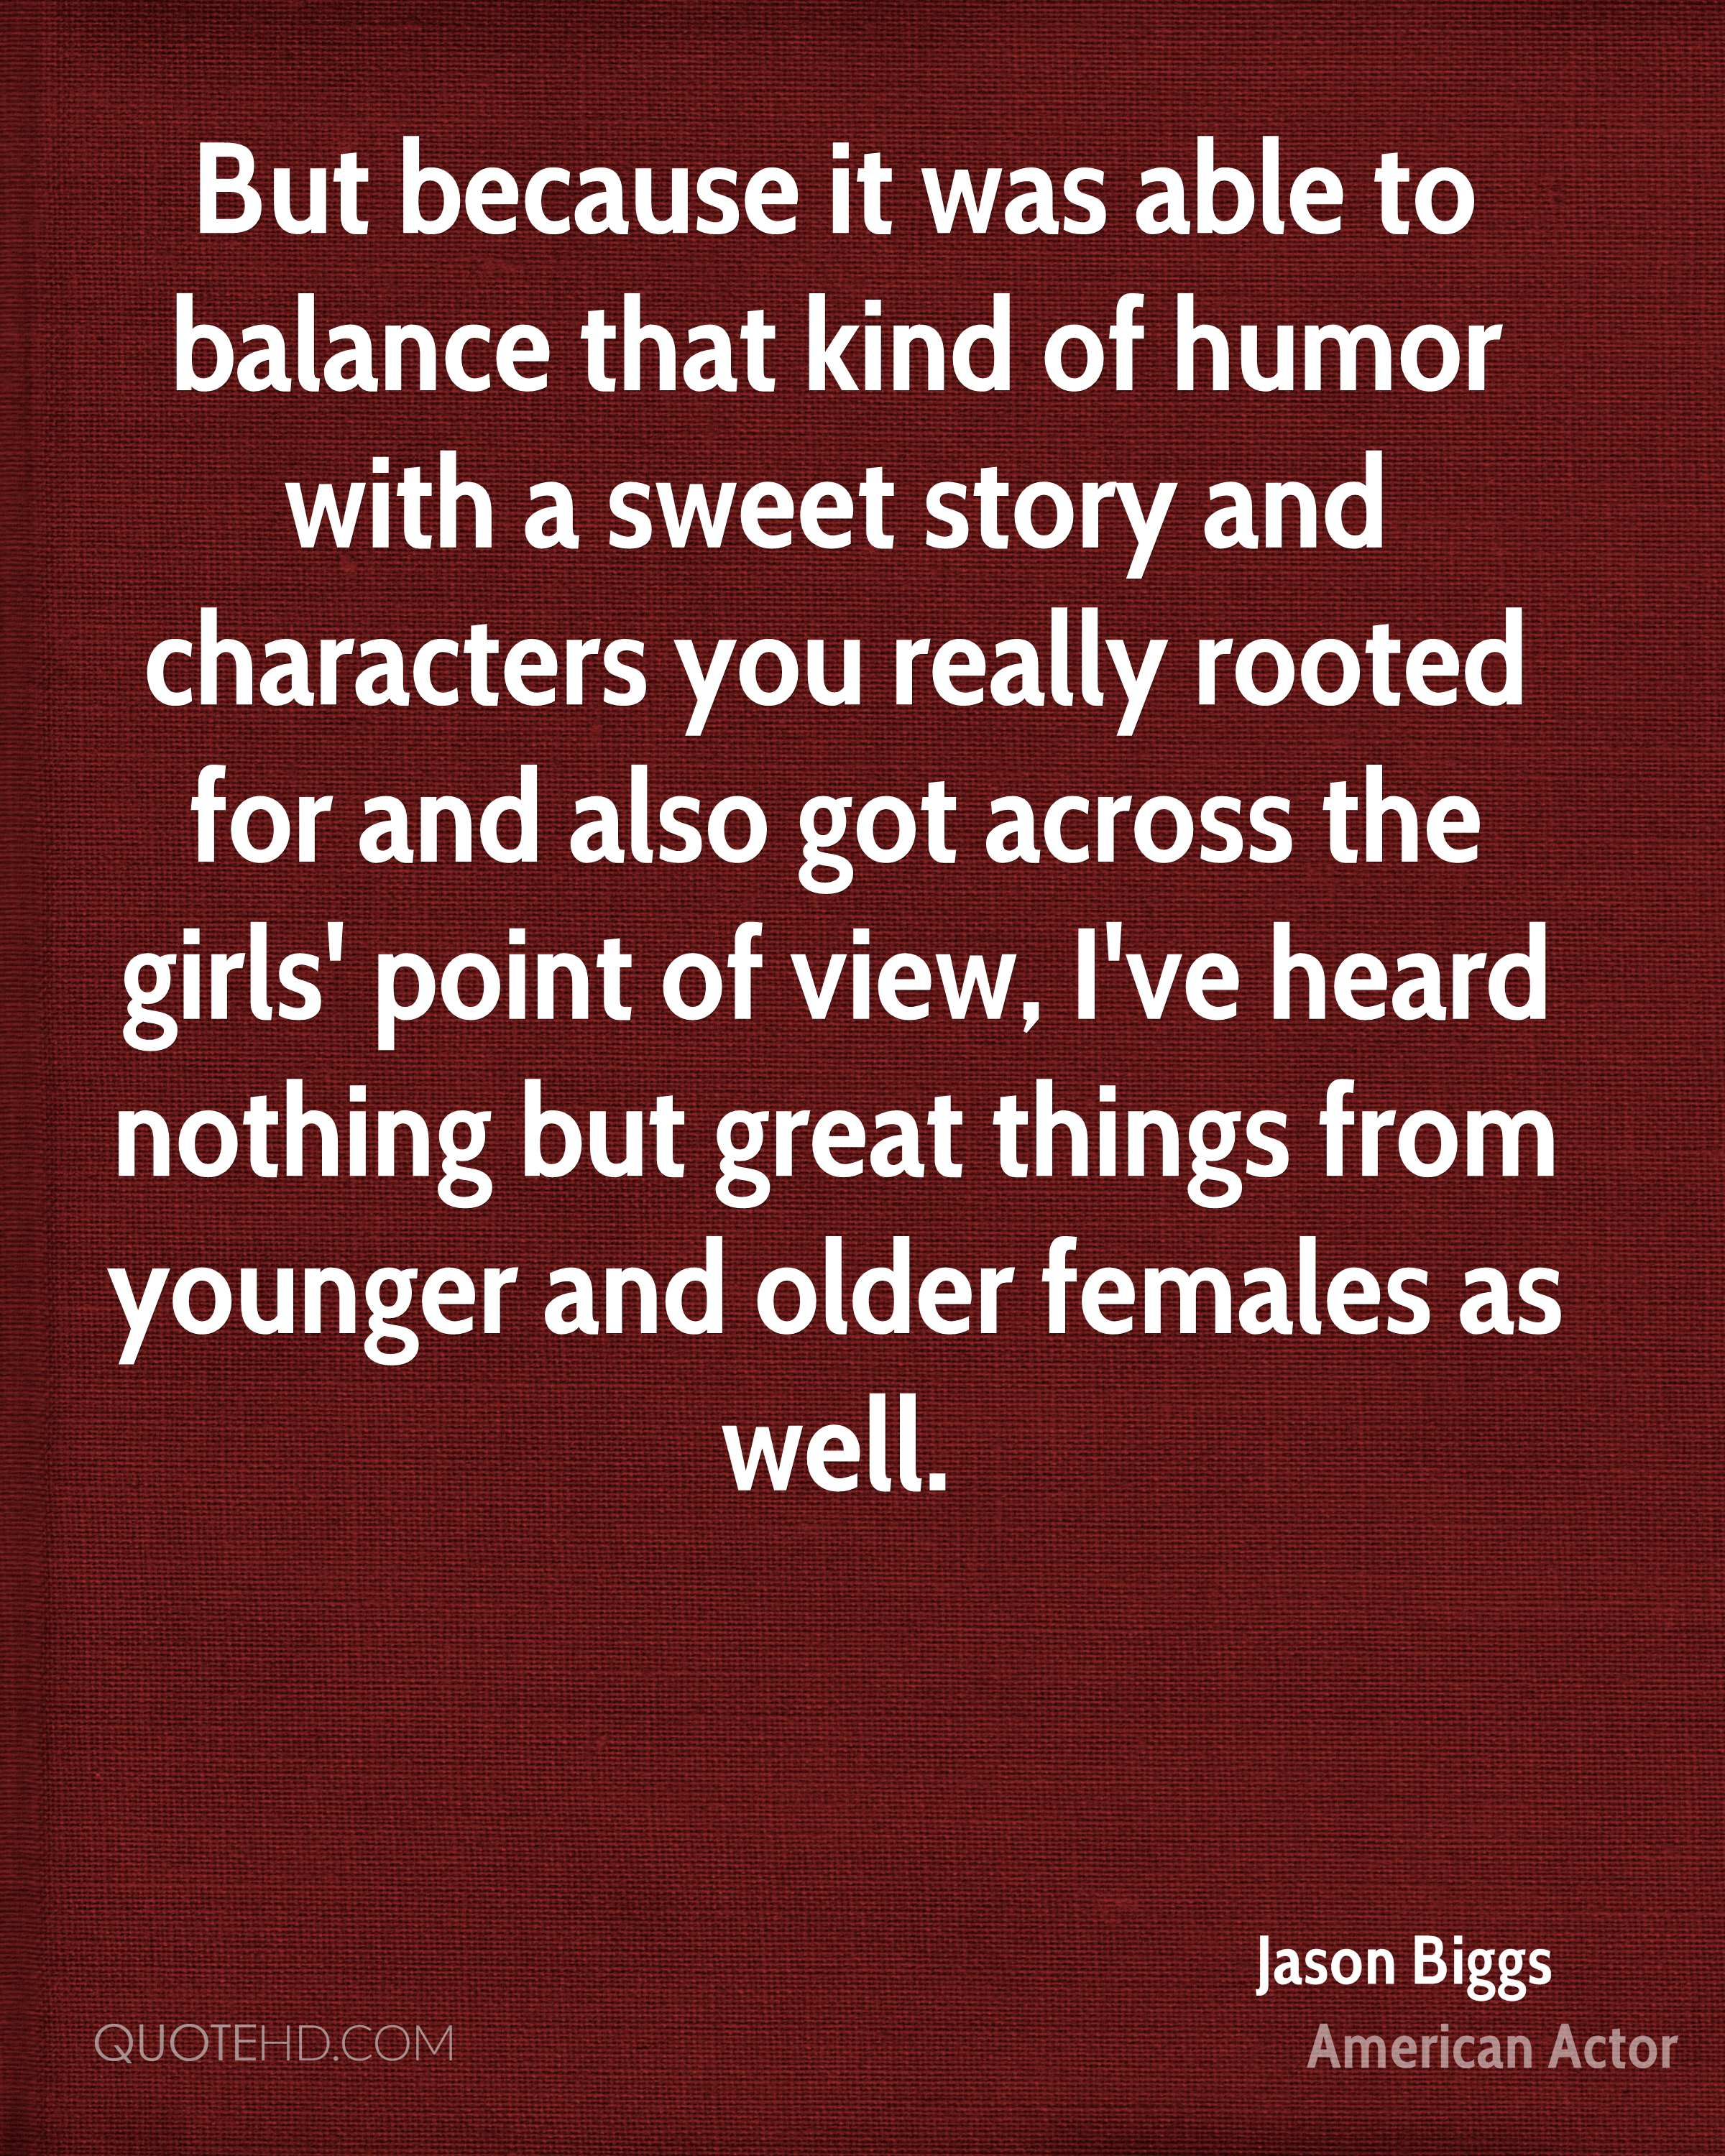 But because it was able to balance that kind of humor with a sweet story and characters you really rooted for and also got across the girls' point of view, I've heard nothing but great things from younger and older females as well.